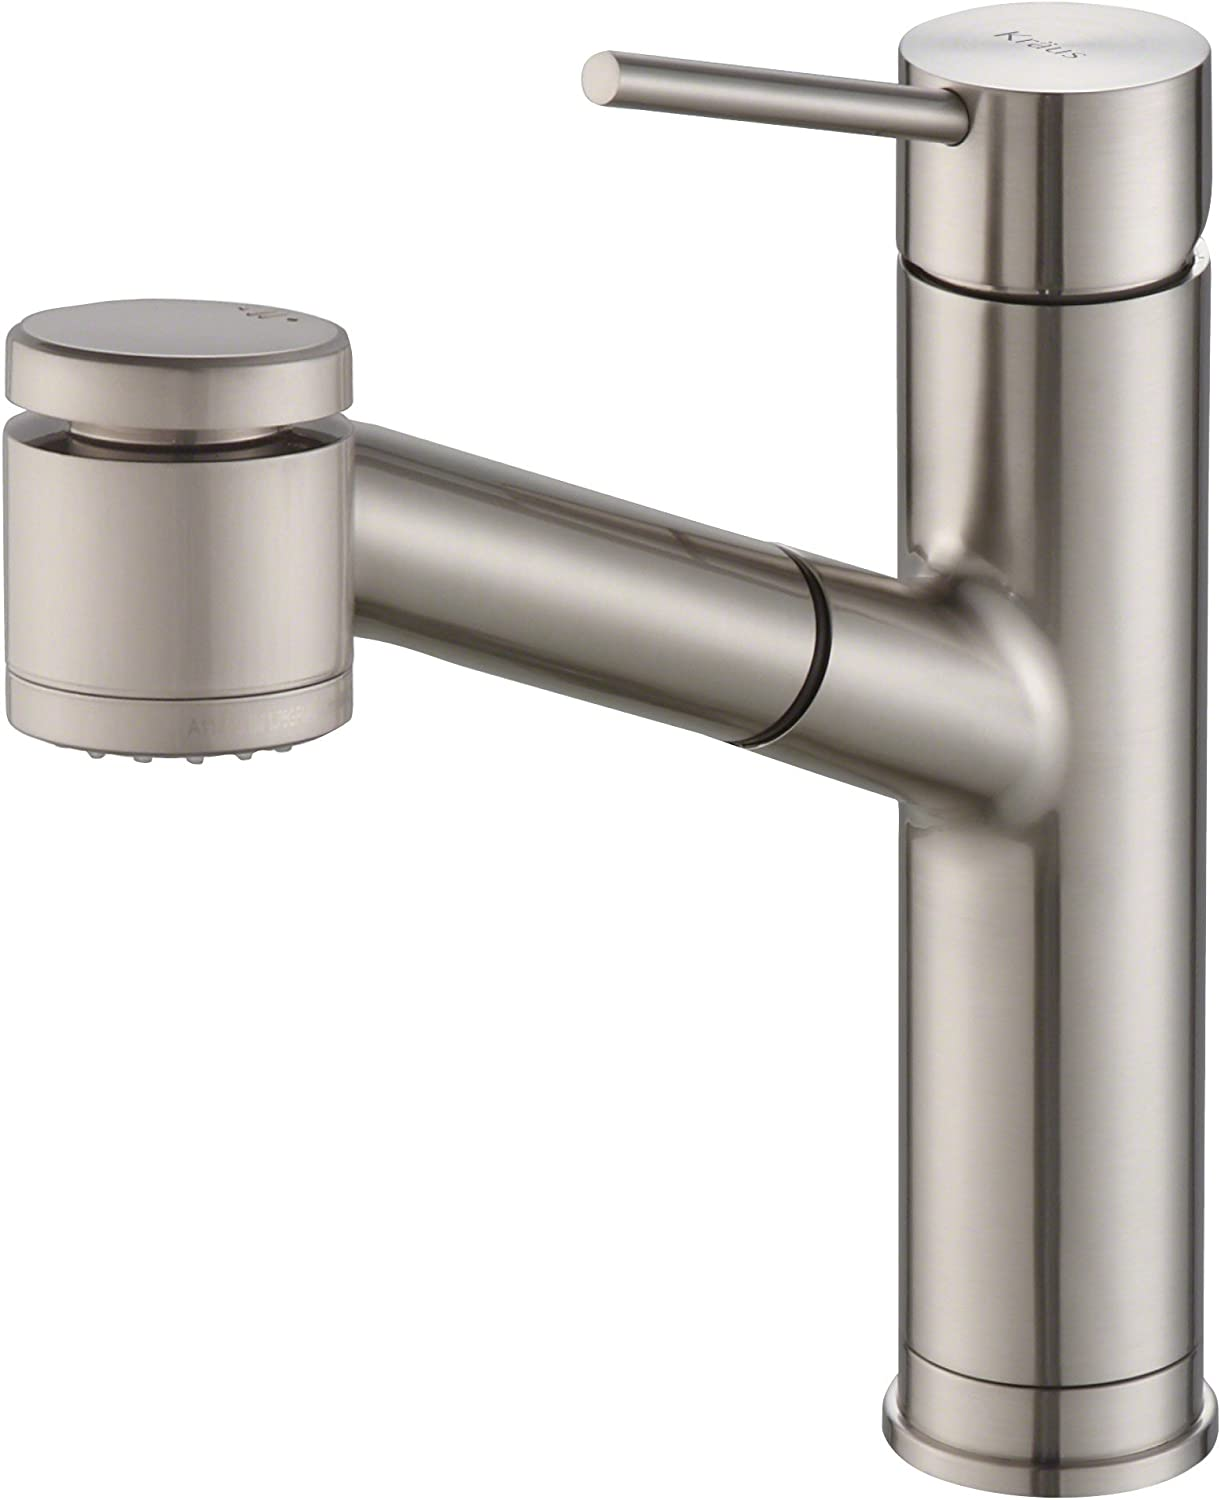 KRAUS KPF-2610SFS Oletto Kitchen Faucet, 10.5 inch, Spot Free Stainless